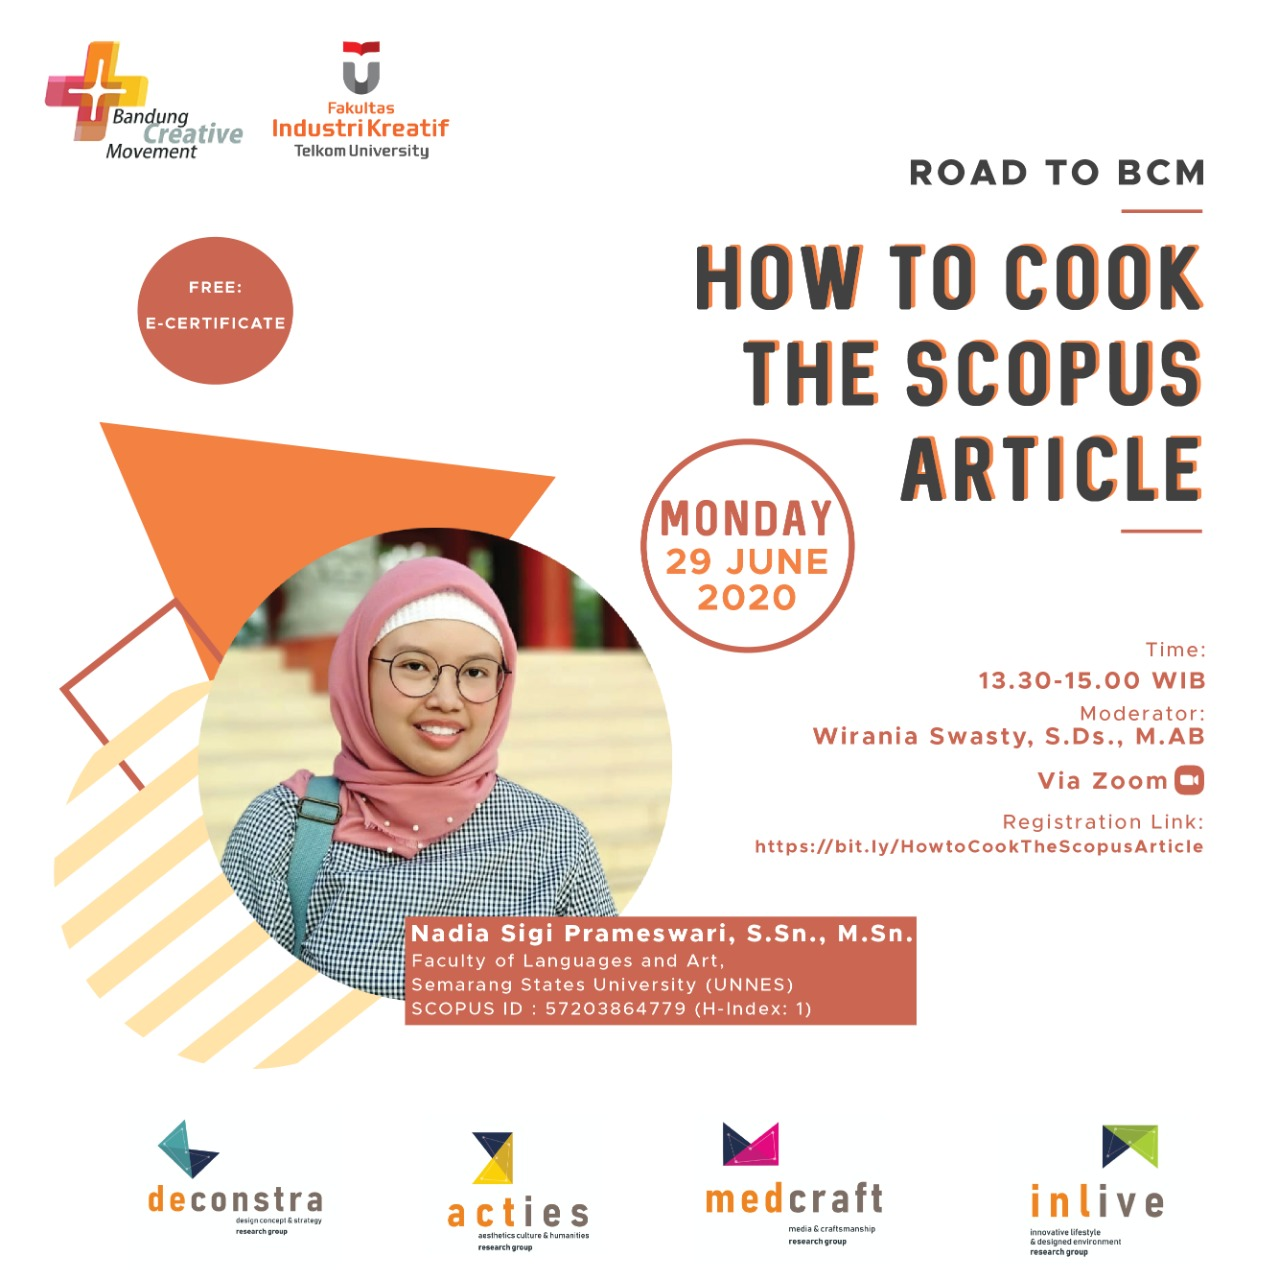 How to cook scopus article